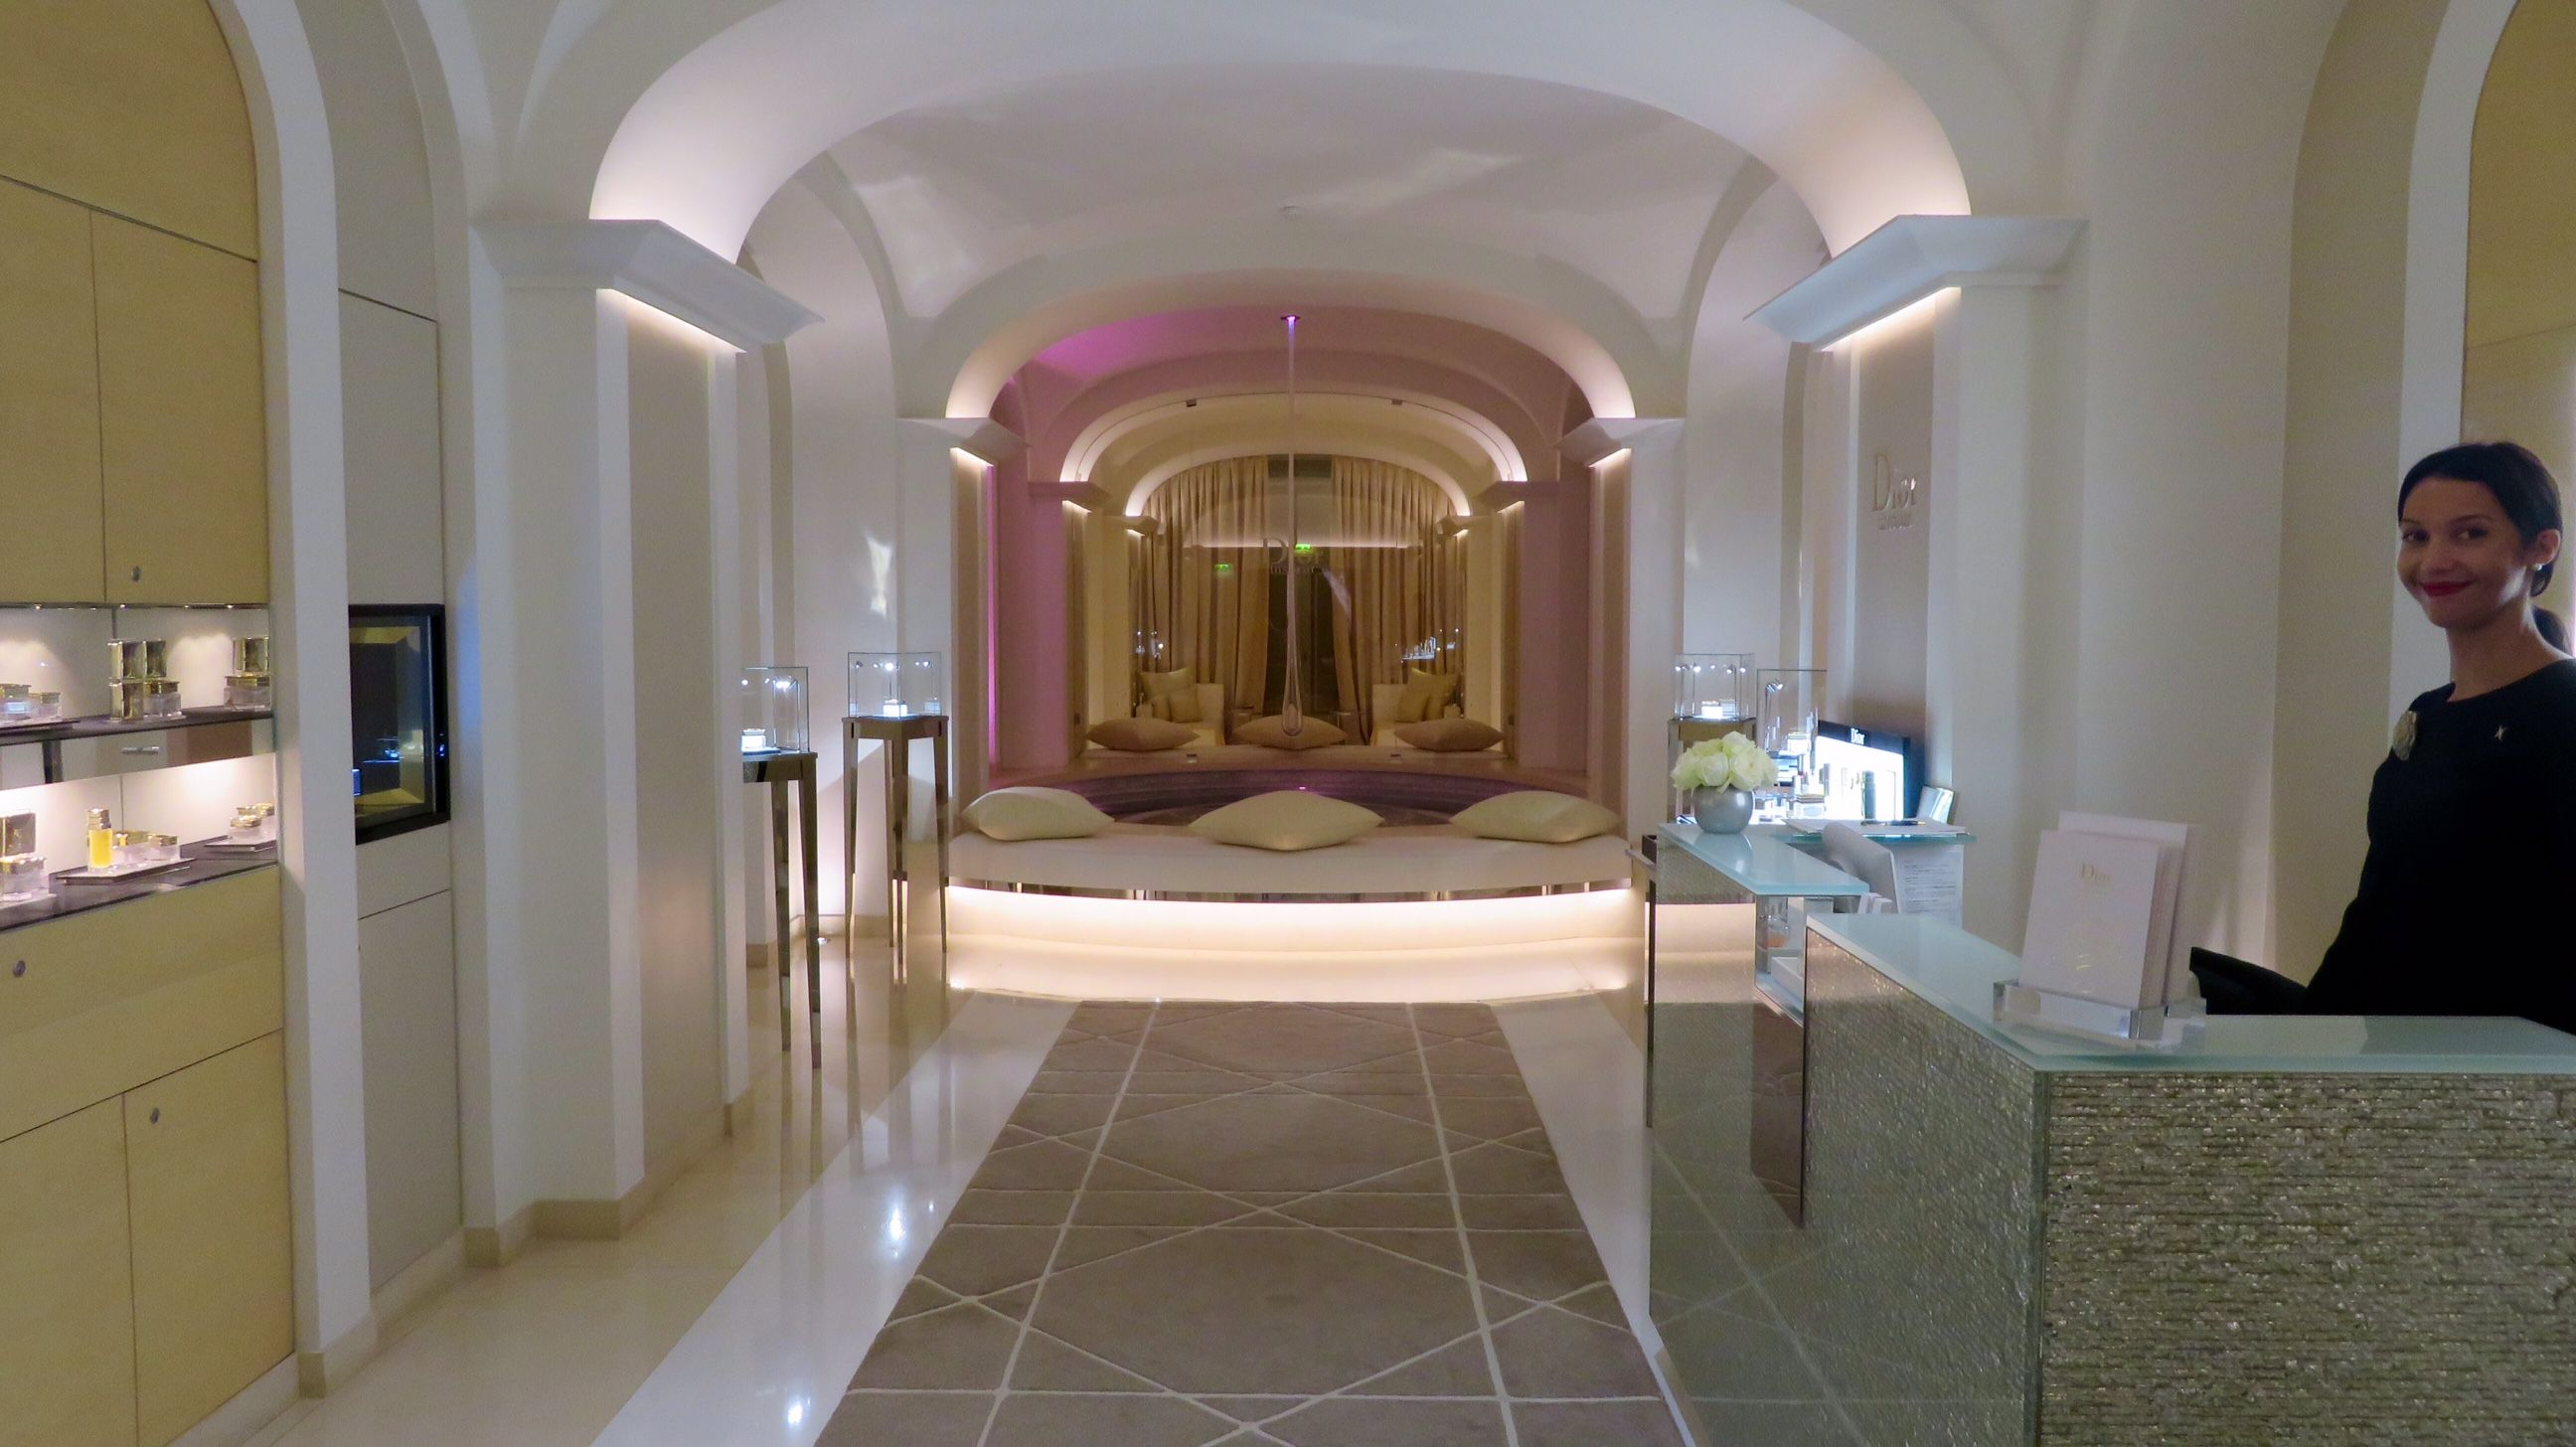 For the ultimate in spa treatments christian dior at plaza athenee hotel in paris